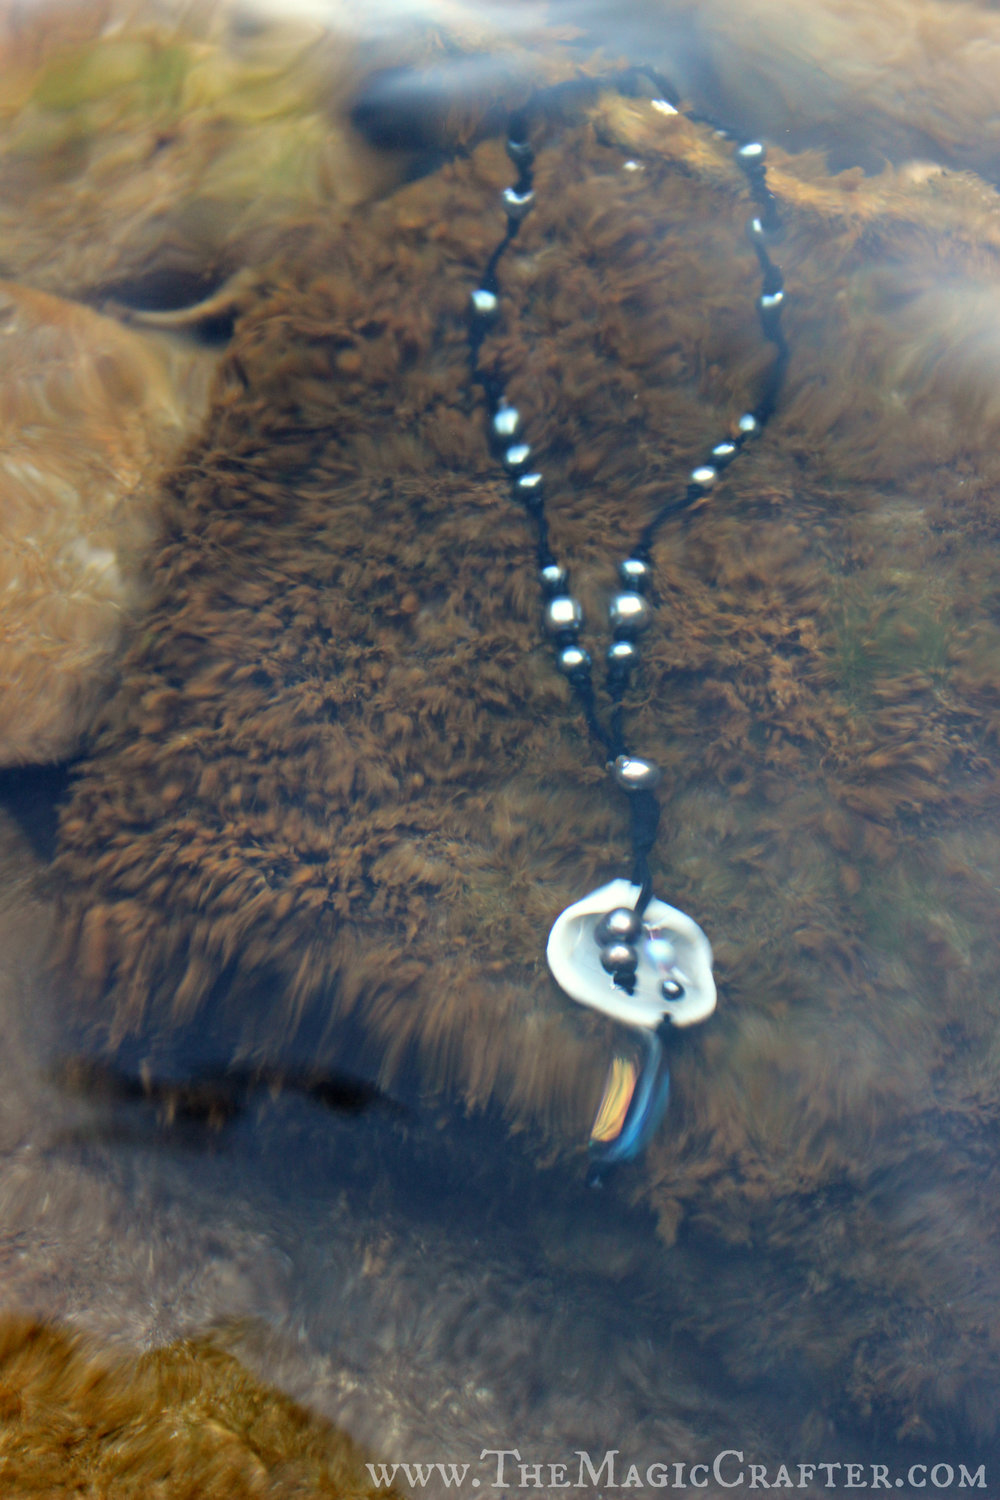 This photo is pretty blurry, isn't it? (They all are, actually... I'm about as stable on land as a ship out in a storm! XD) The blurriness is really because the necklace is underwater though. :D It's laying on a rather fuzzy rock near the shoreline of Grand Traverse Bay. It looks really pretty underwater!